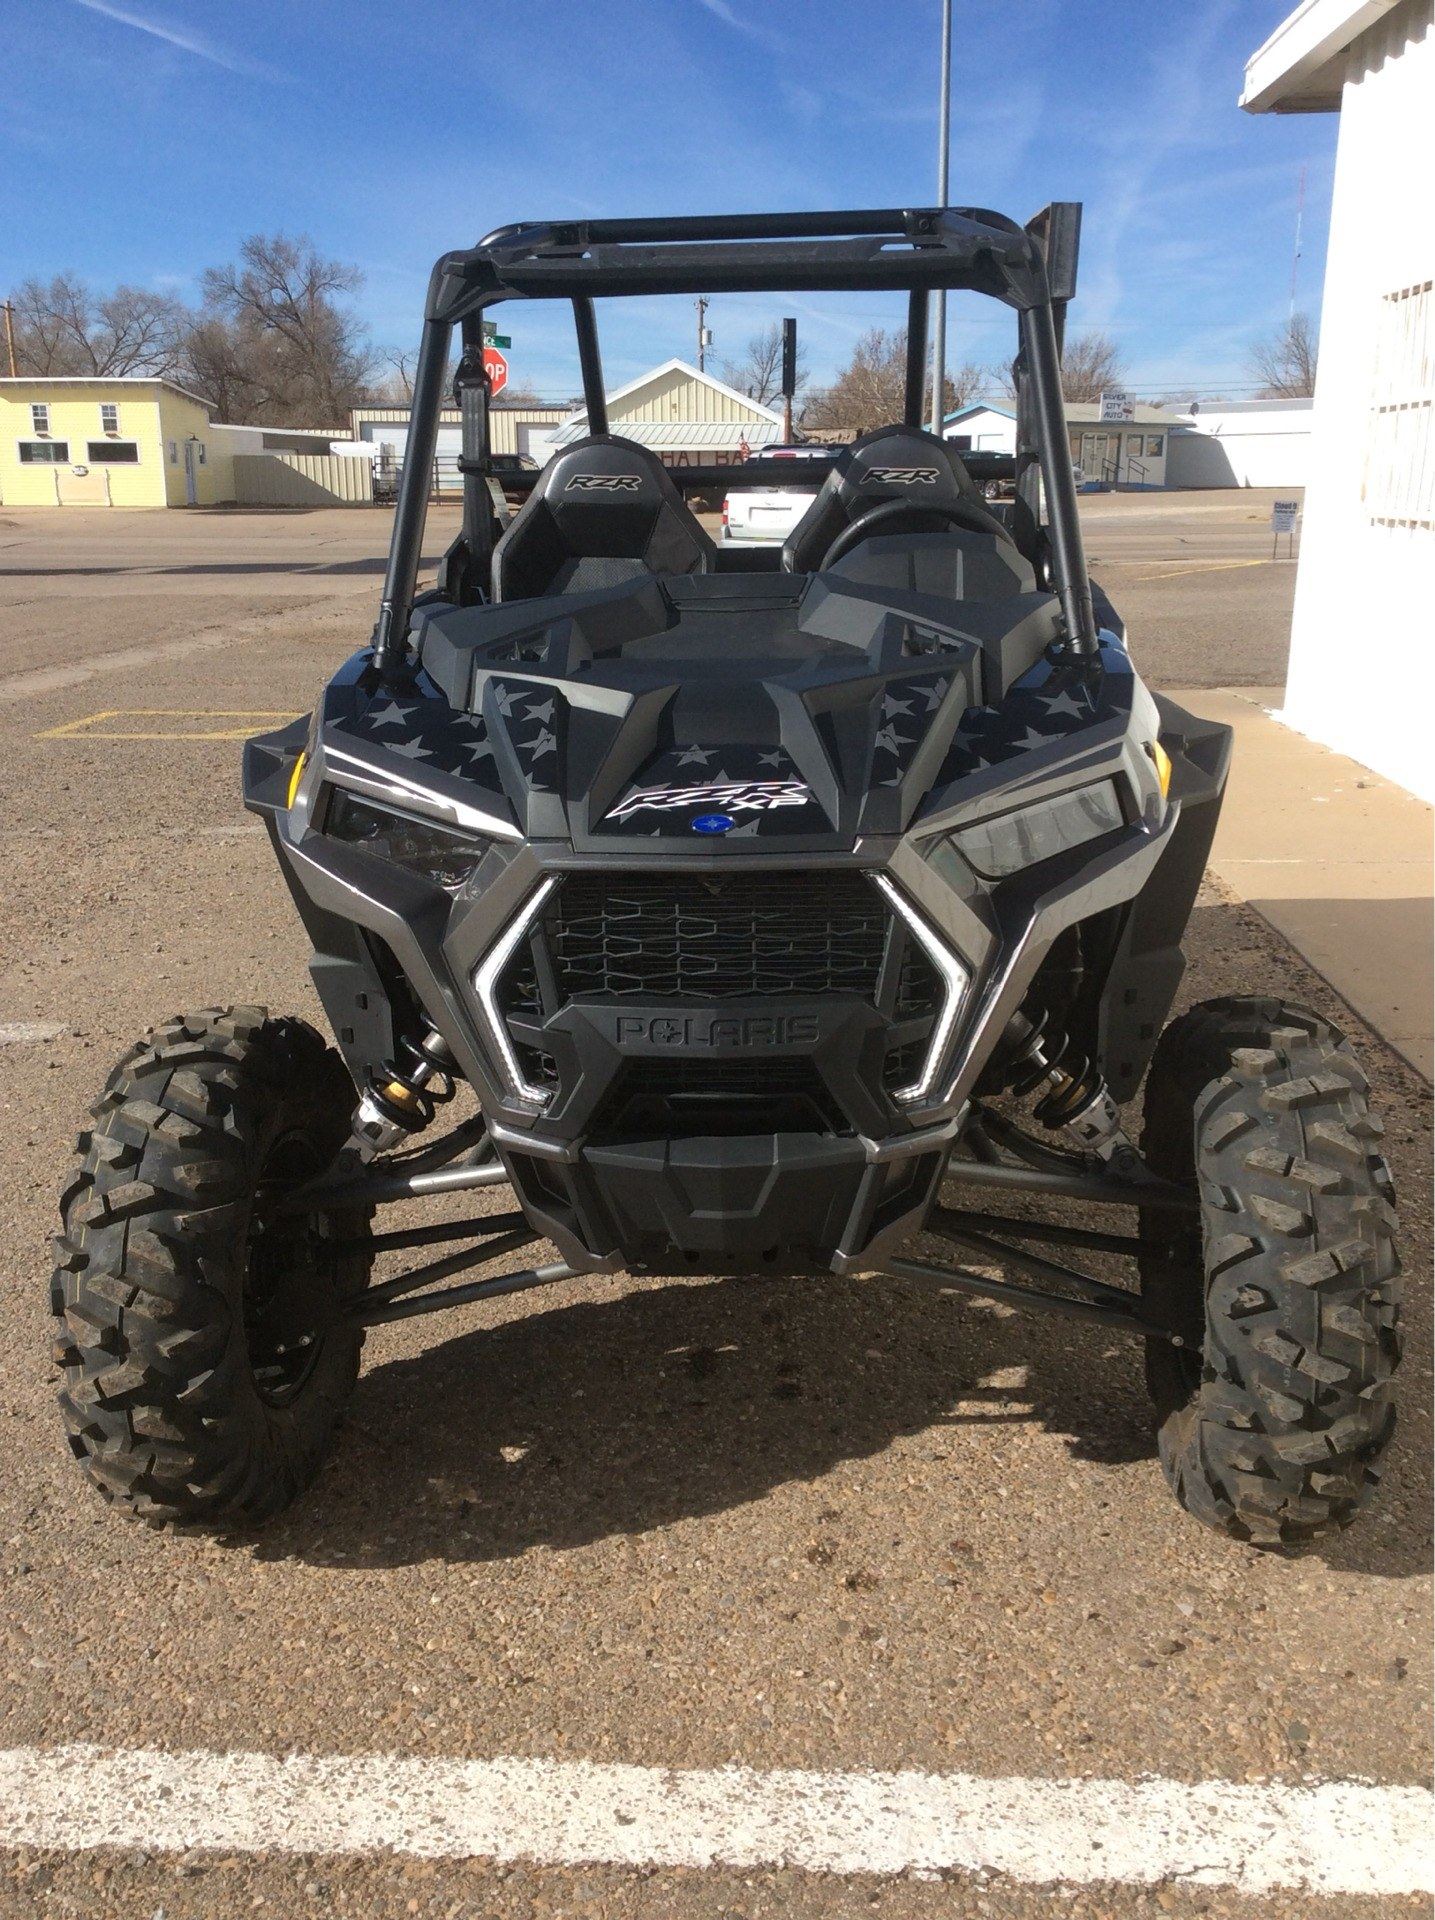 2020 Polaris RZR XP 1000 LE in Clovis, New Mexico - Photo 2